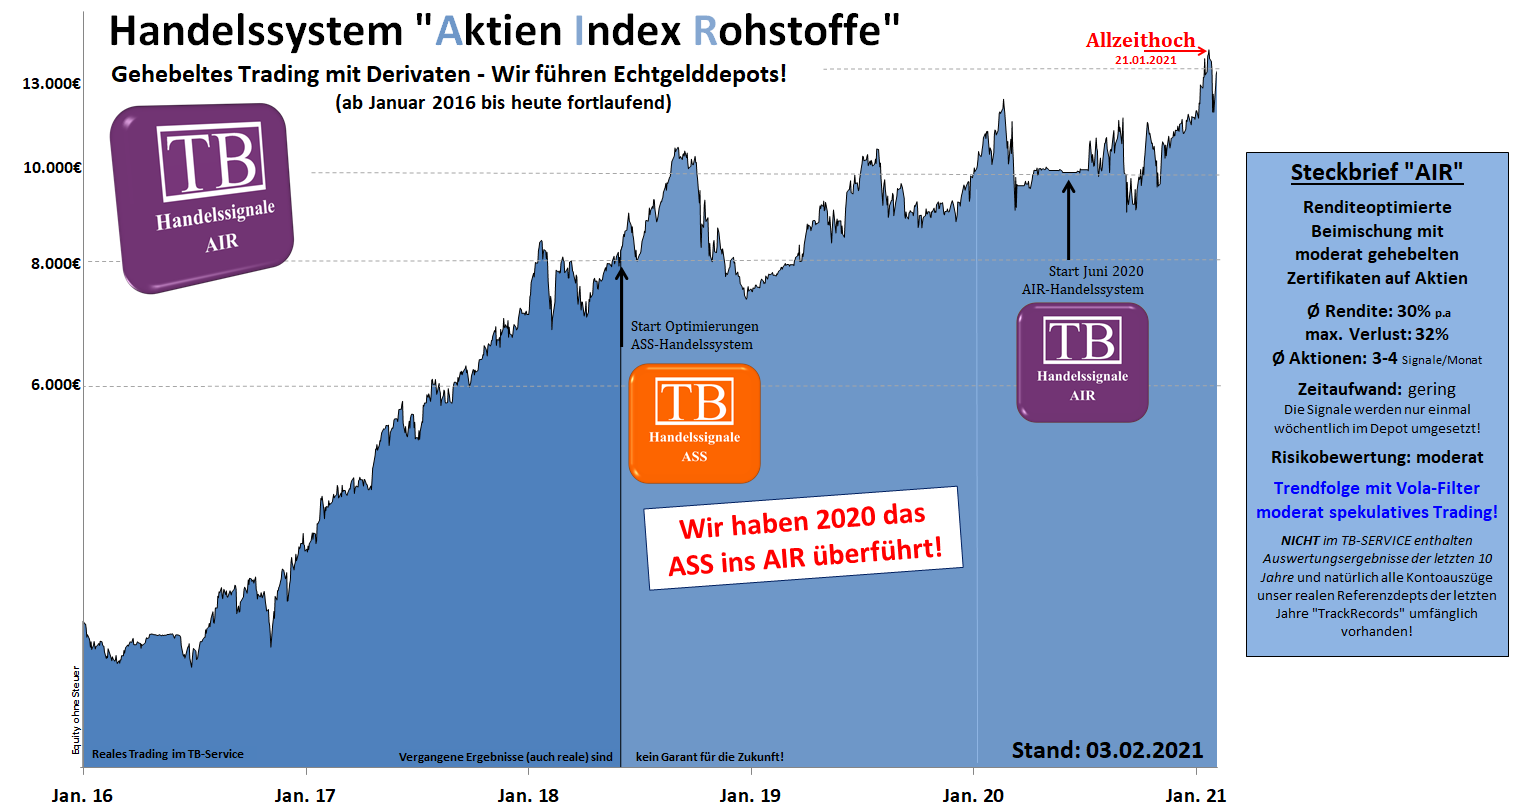 equity ass.hebel.mittelfristig.tradingbrothers